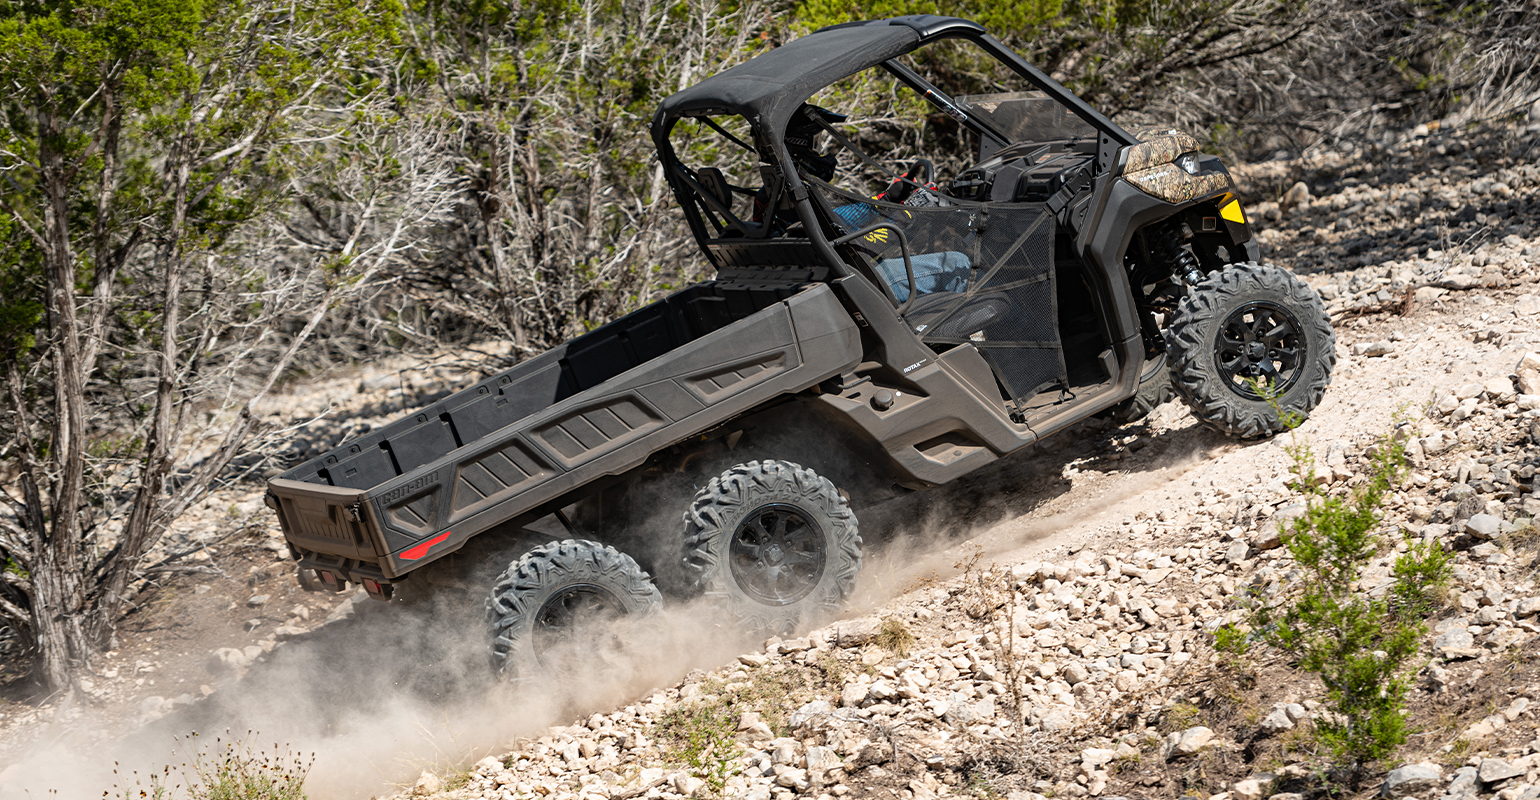 The 6x6 model Can-Am Defender climbs a steep hill